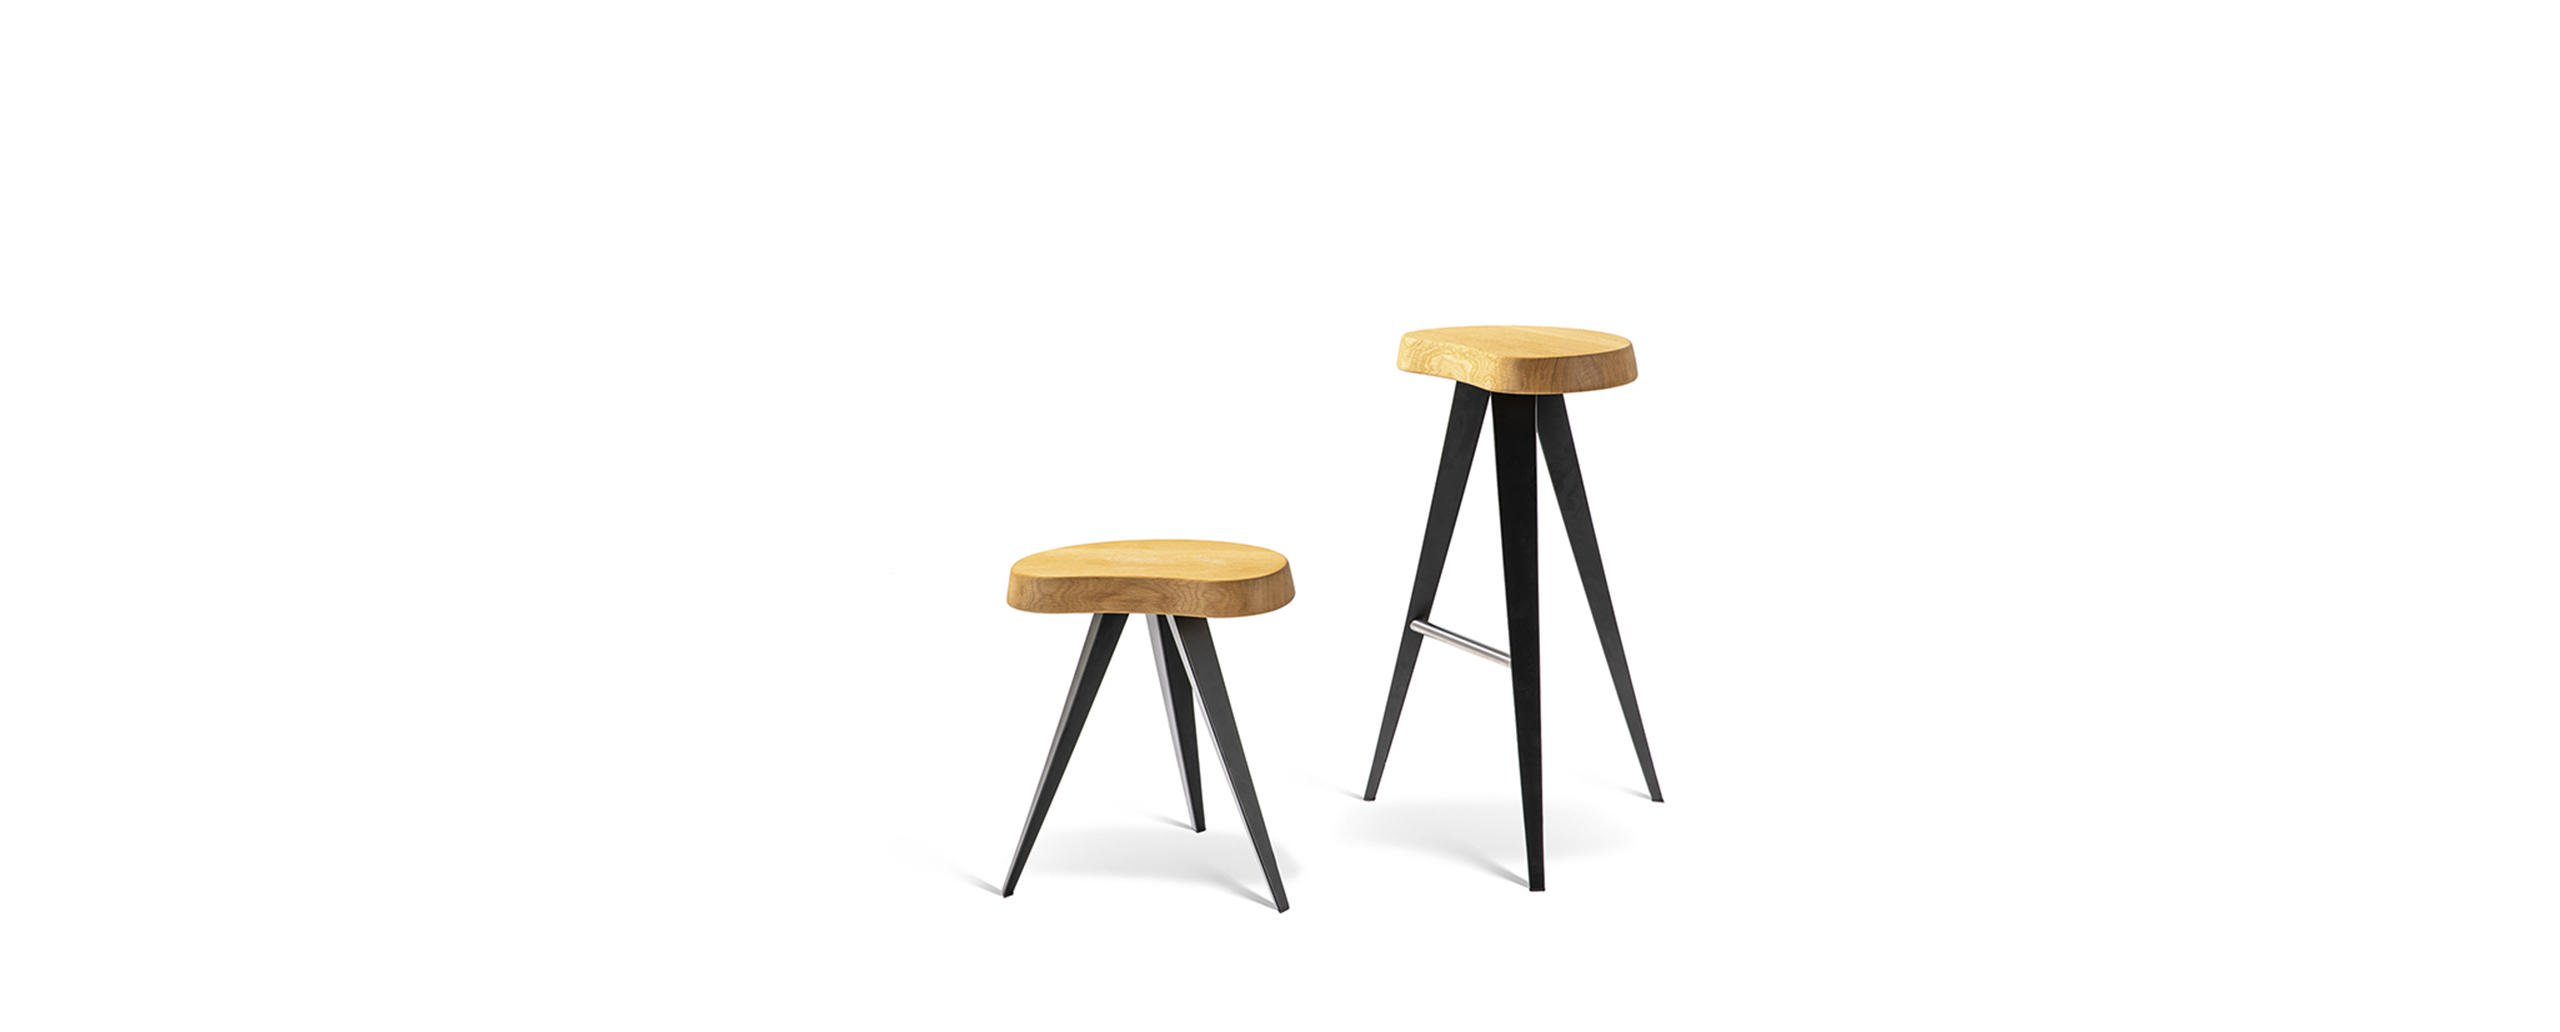 2_cassina_mexique_charlotte_perriand_bar_stools